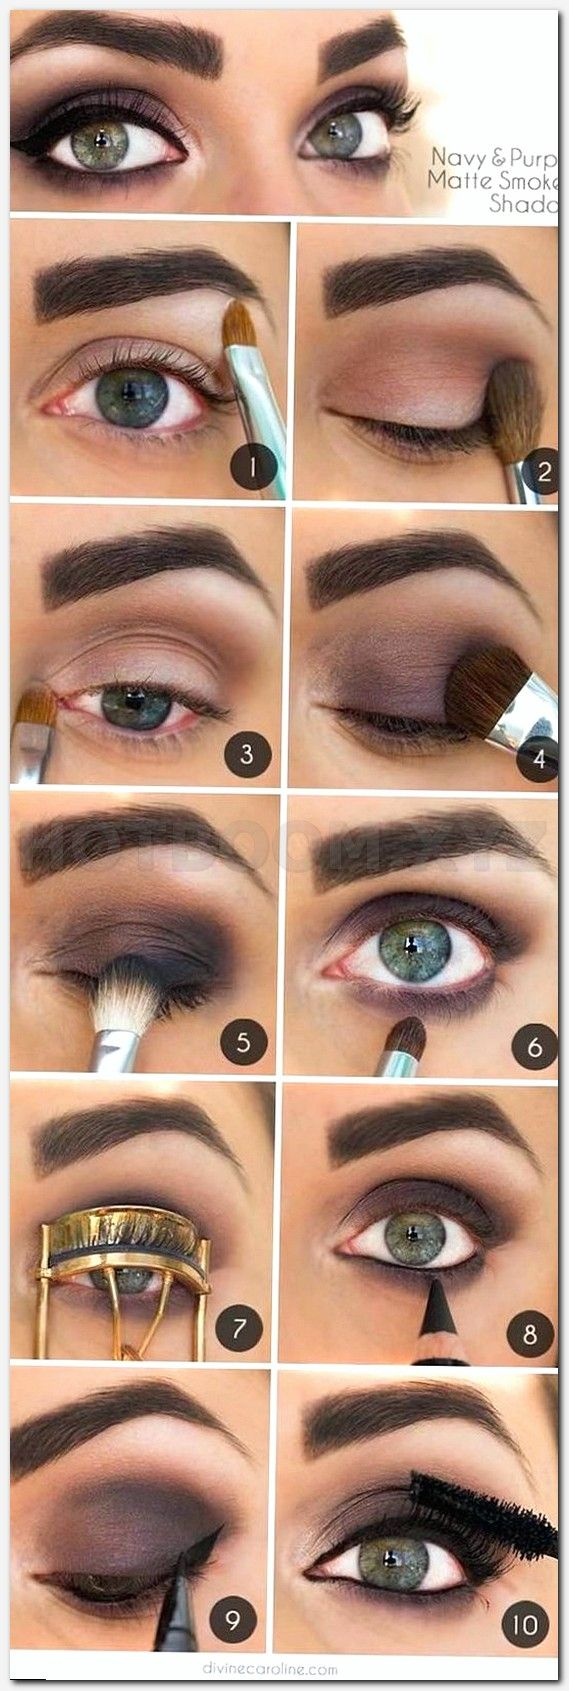 arsali make up, you make up com, party wear makeup video, how we do makeup at home, natural skin tips, u come makeup, unusual beauty tips, african makeup artist, youcam makeup editor download, best indian makeup, wake me up album, makeup trends 2017, top 10 mascaras for volume, trending makeup brands, alex grey painter, how to do smokey eye makeup